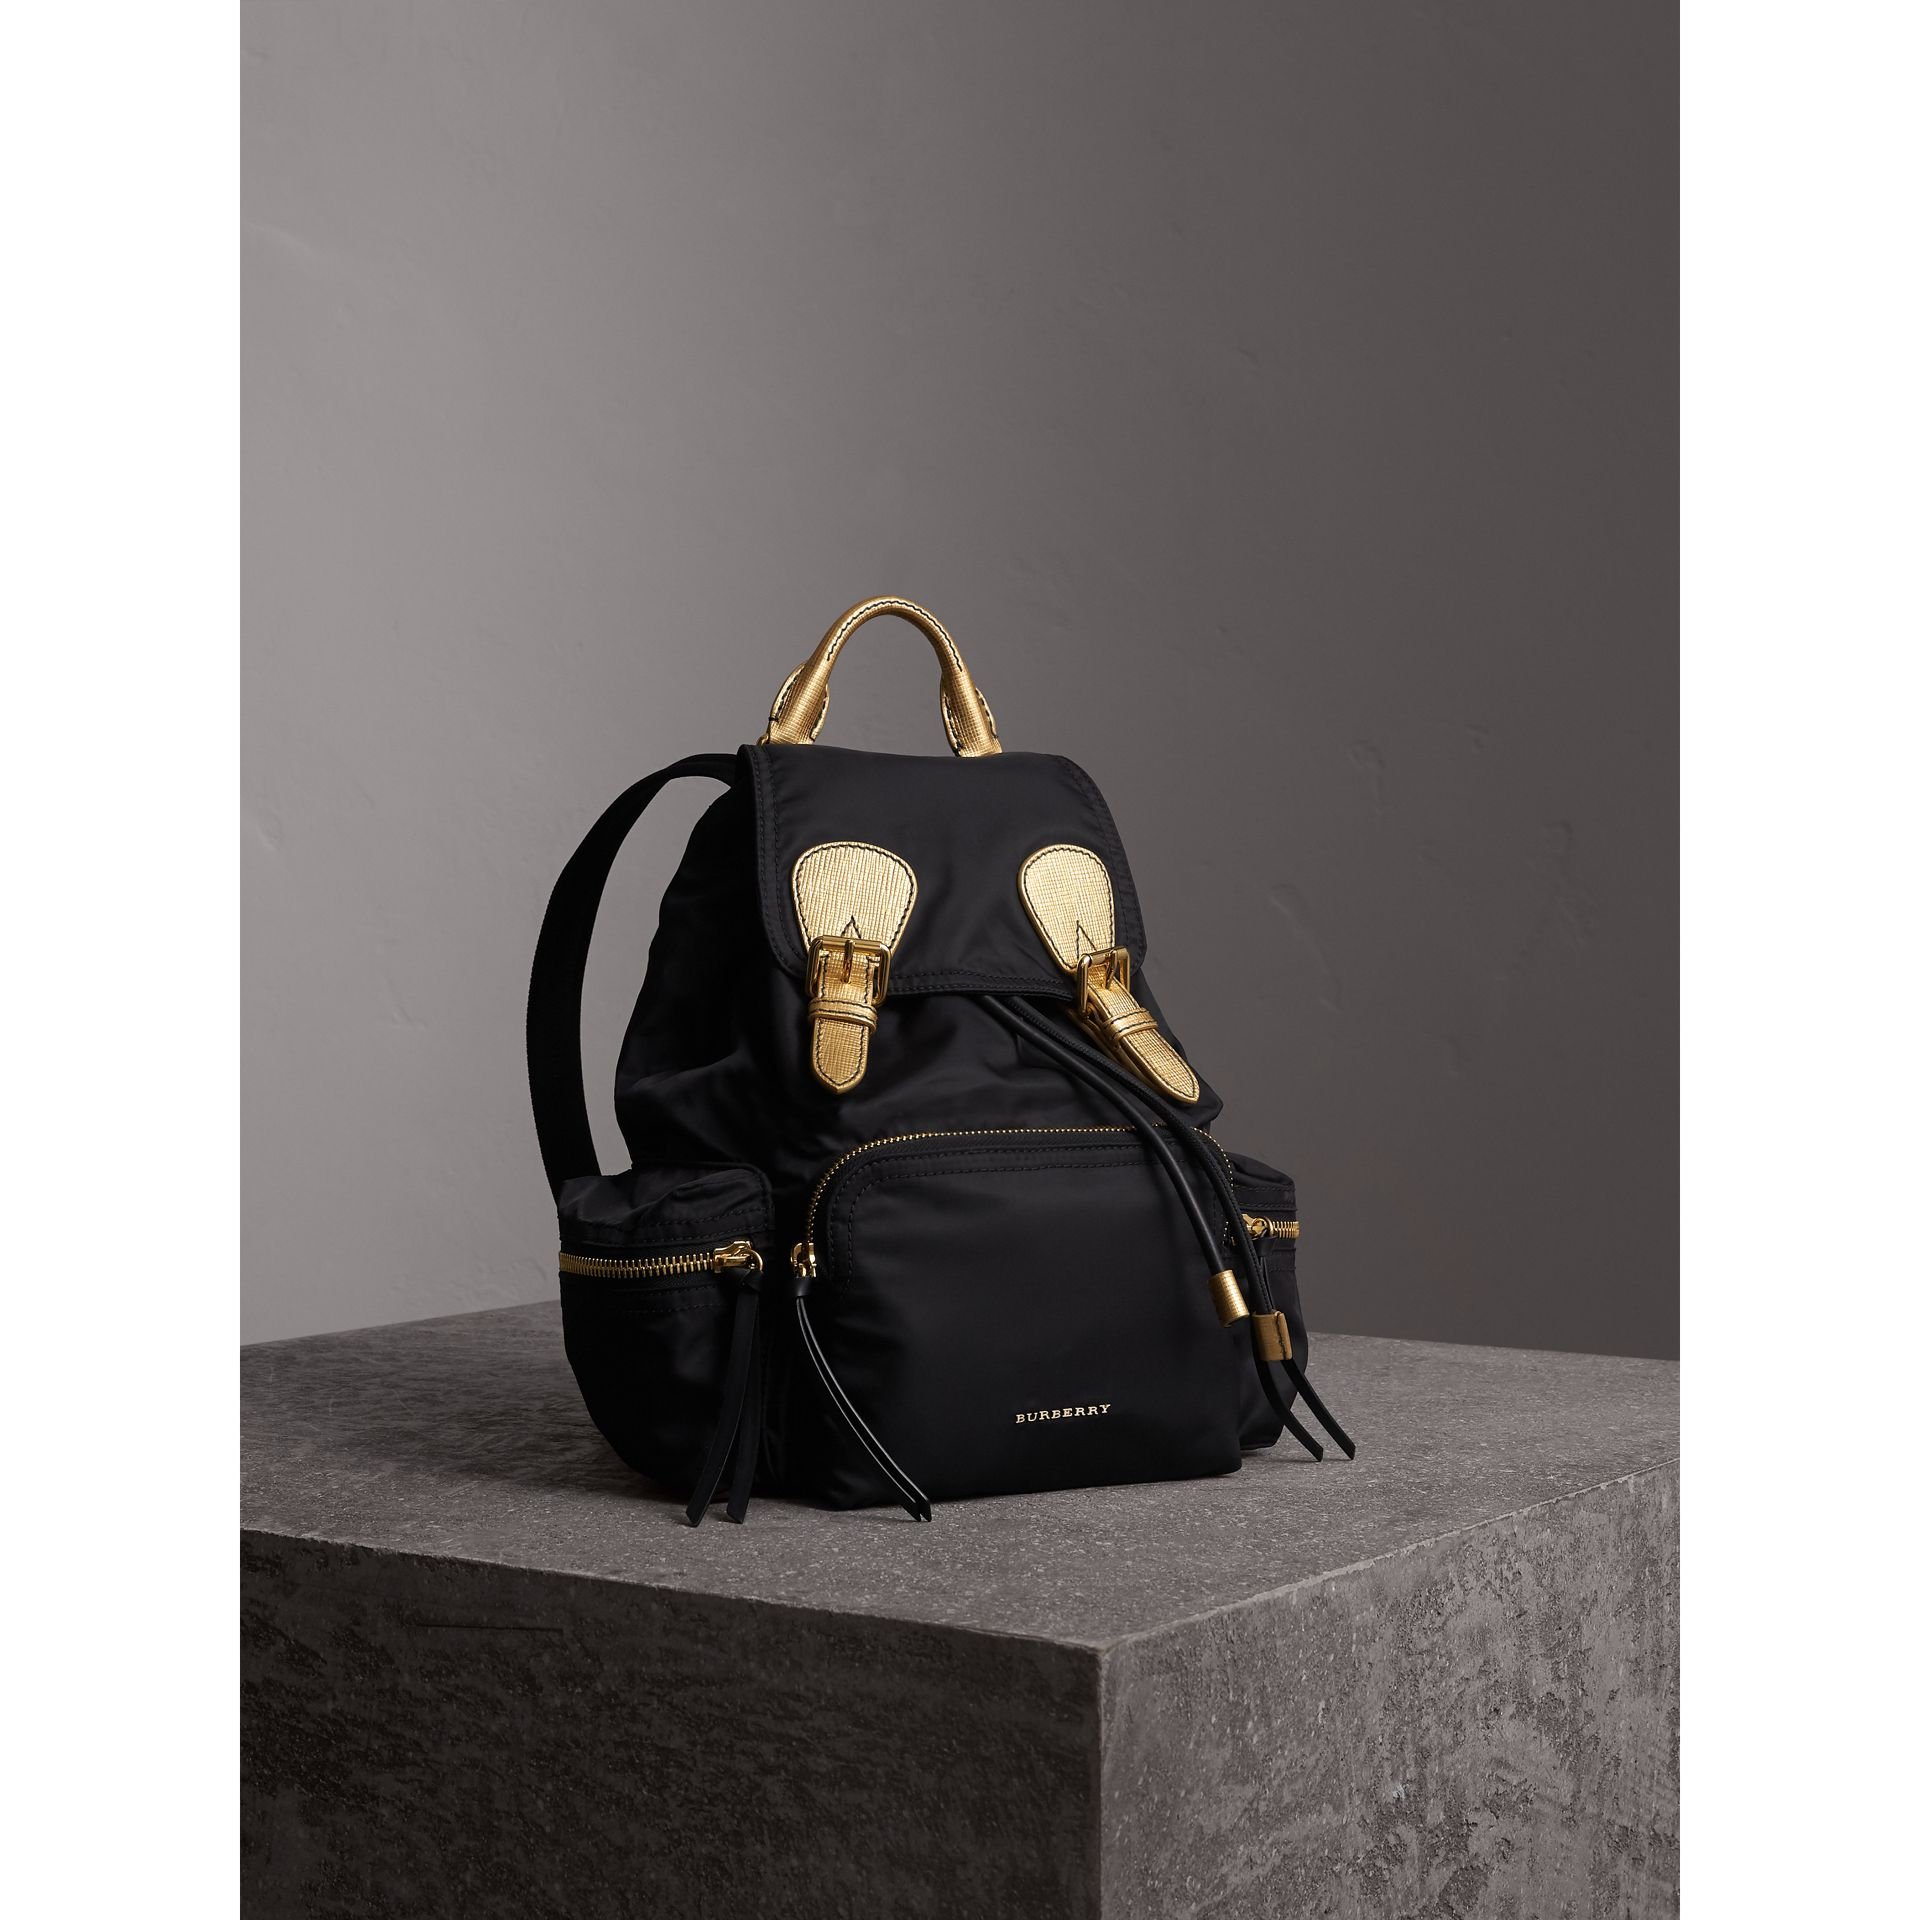 Sac The Rucksack moyen en nylon bicolore et cuir (Noir/or) - Femme | Burberry - photo de la galerie 7